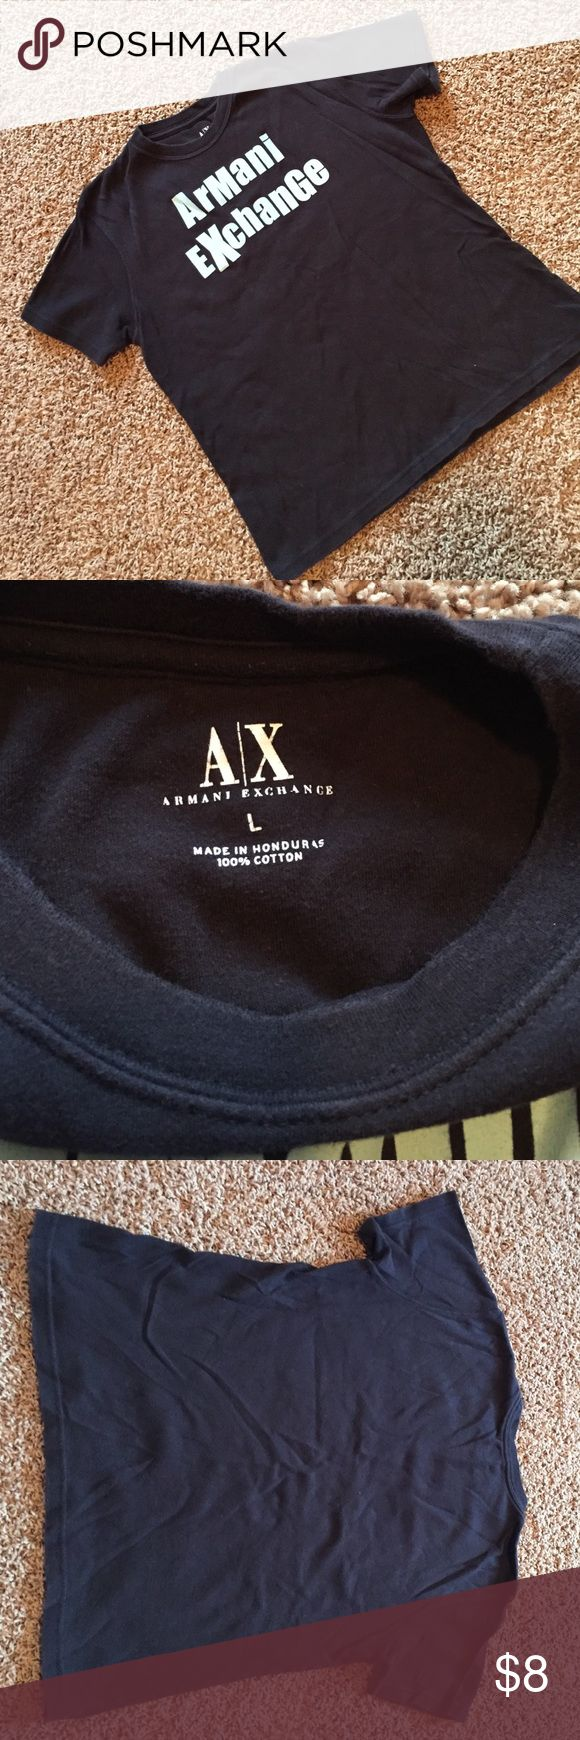 """Armani Exchange fun vintage baby tee black This one is a throwback! Do you miss the baby tee days? This cute 100% cotton tee from Armani exchange is from the era of the baby tee. It's marked as a size large but definitely runs small in typical baby tee style. 22"""" from shoulder to hem, bust 18.5"""" across. Fun! A/X Armani Exchange Tops Tees - Short Sleeve"""